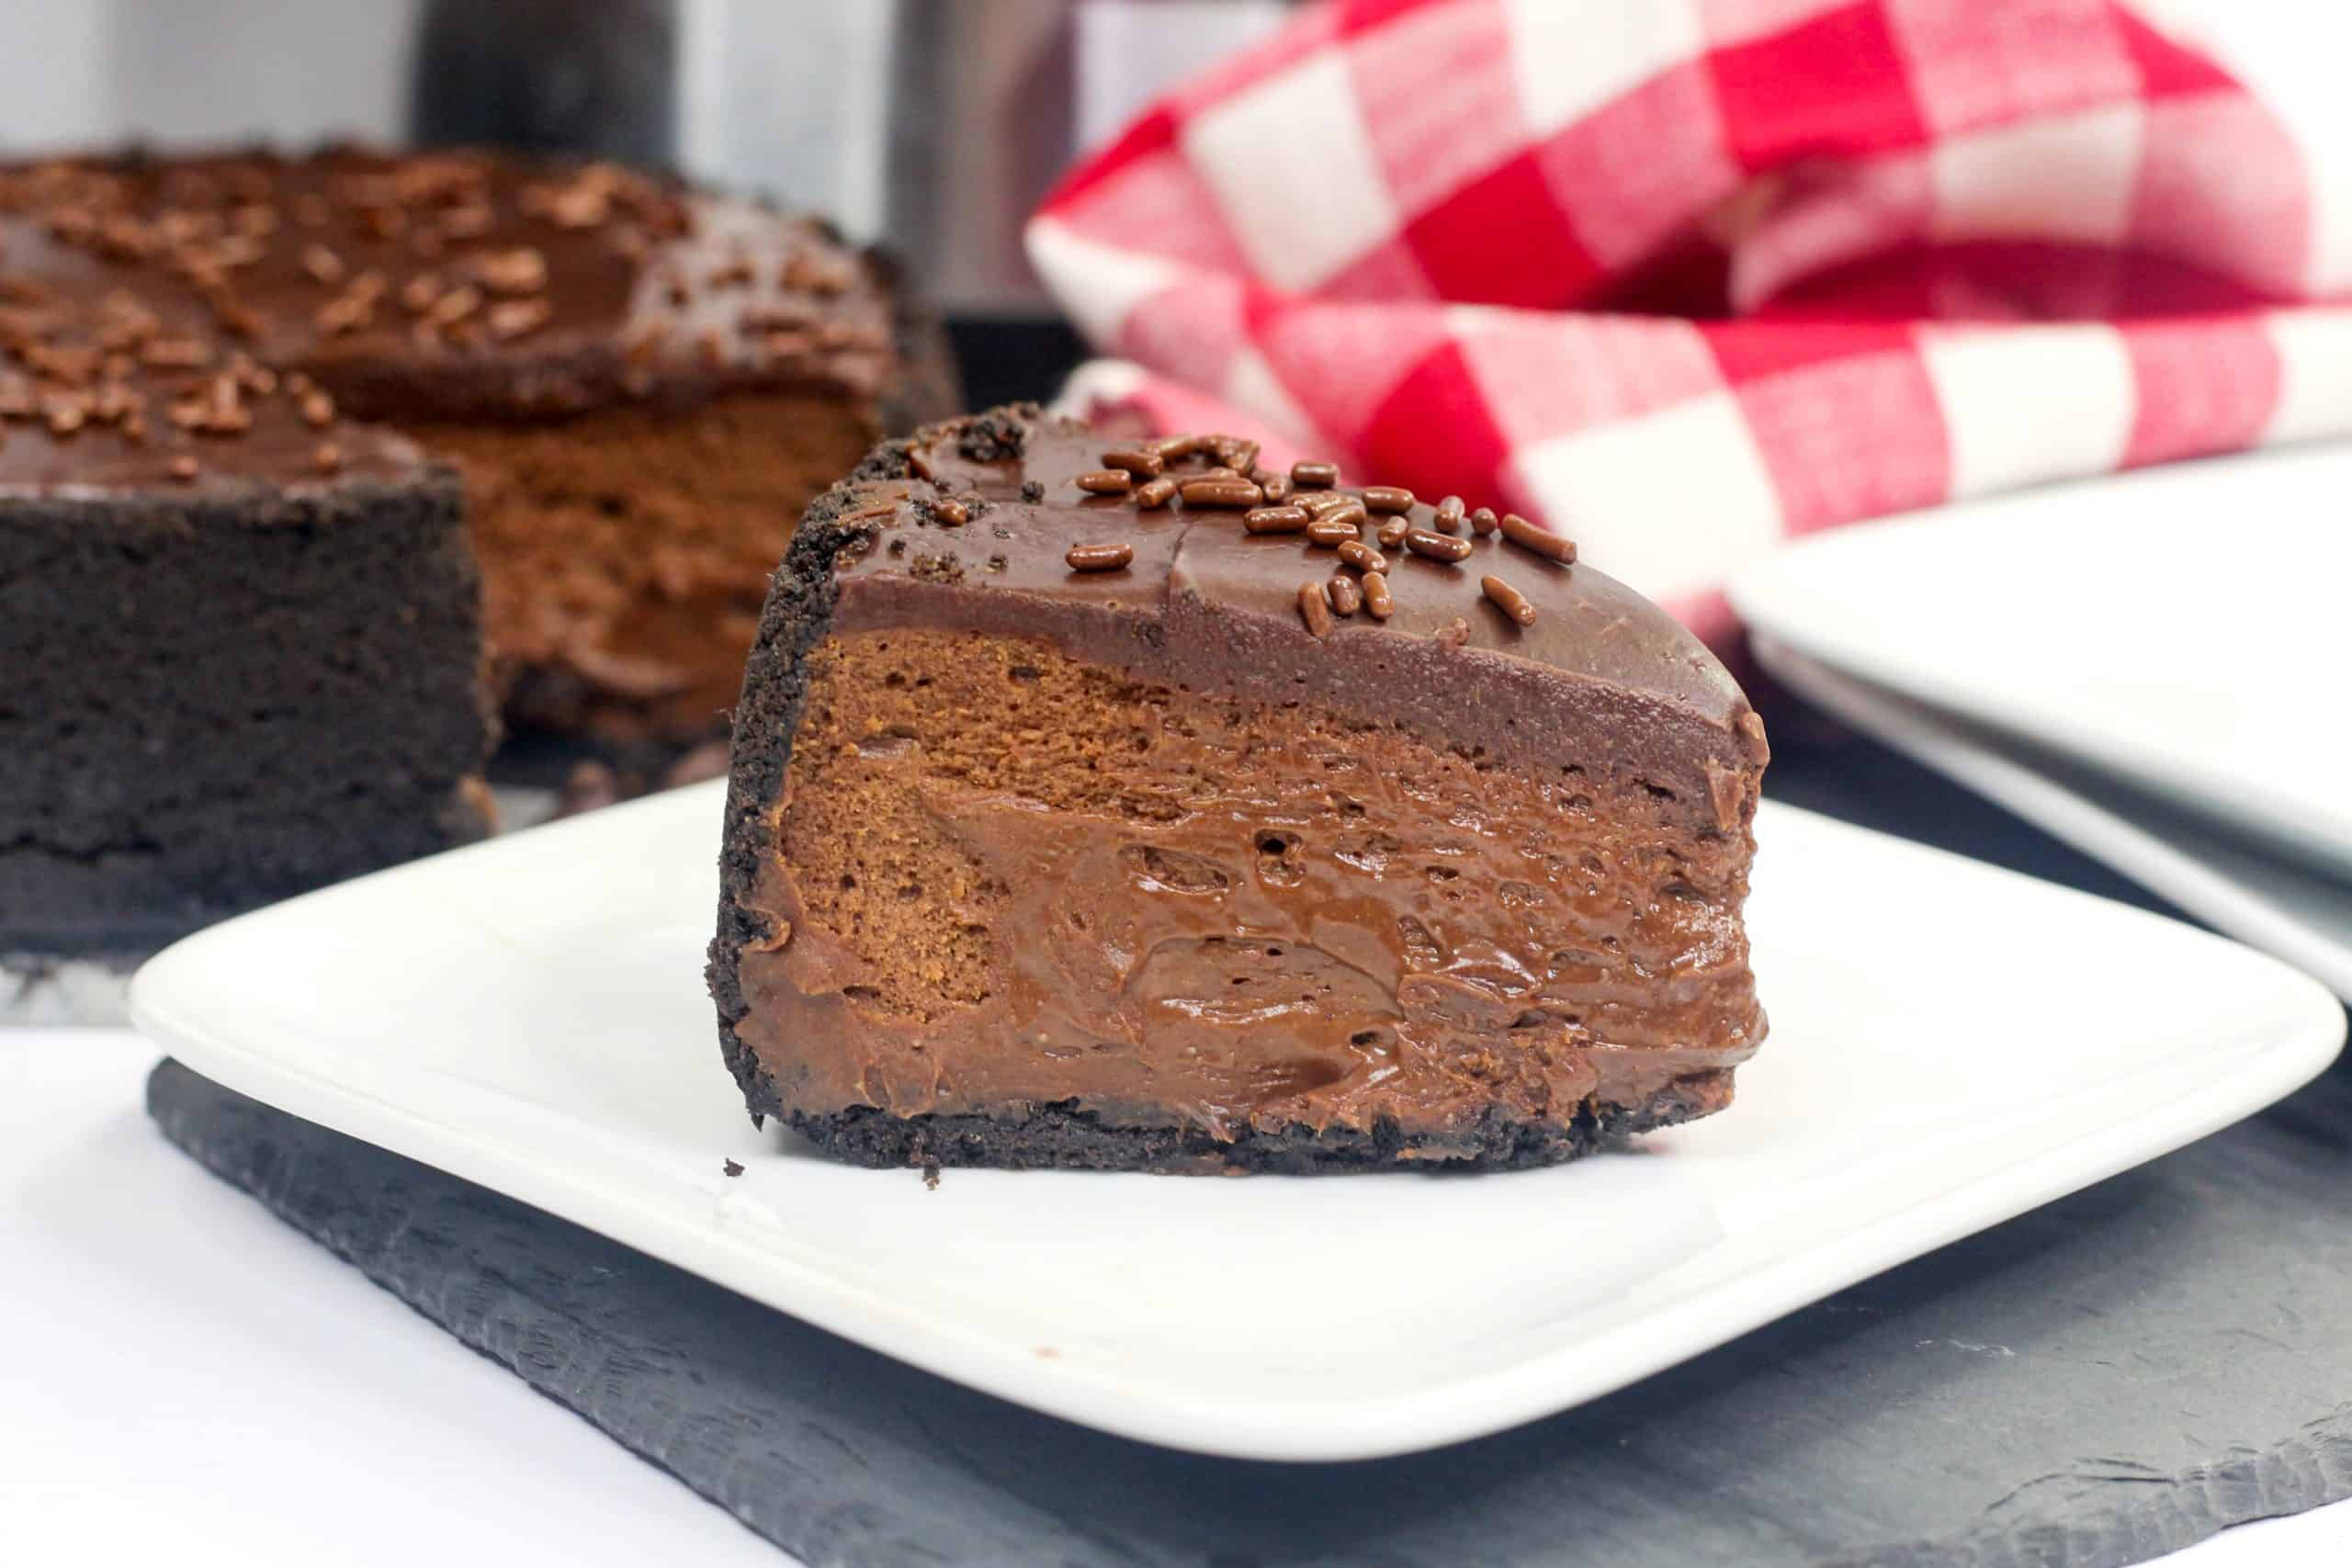 Slice of chocolate cheesecake on a white plate